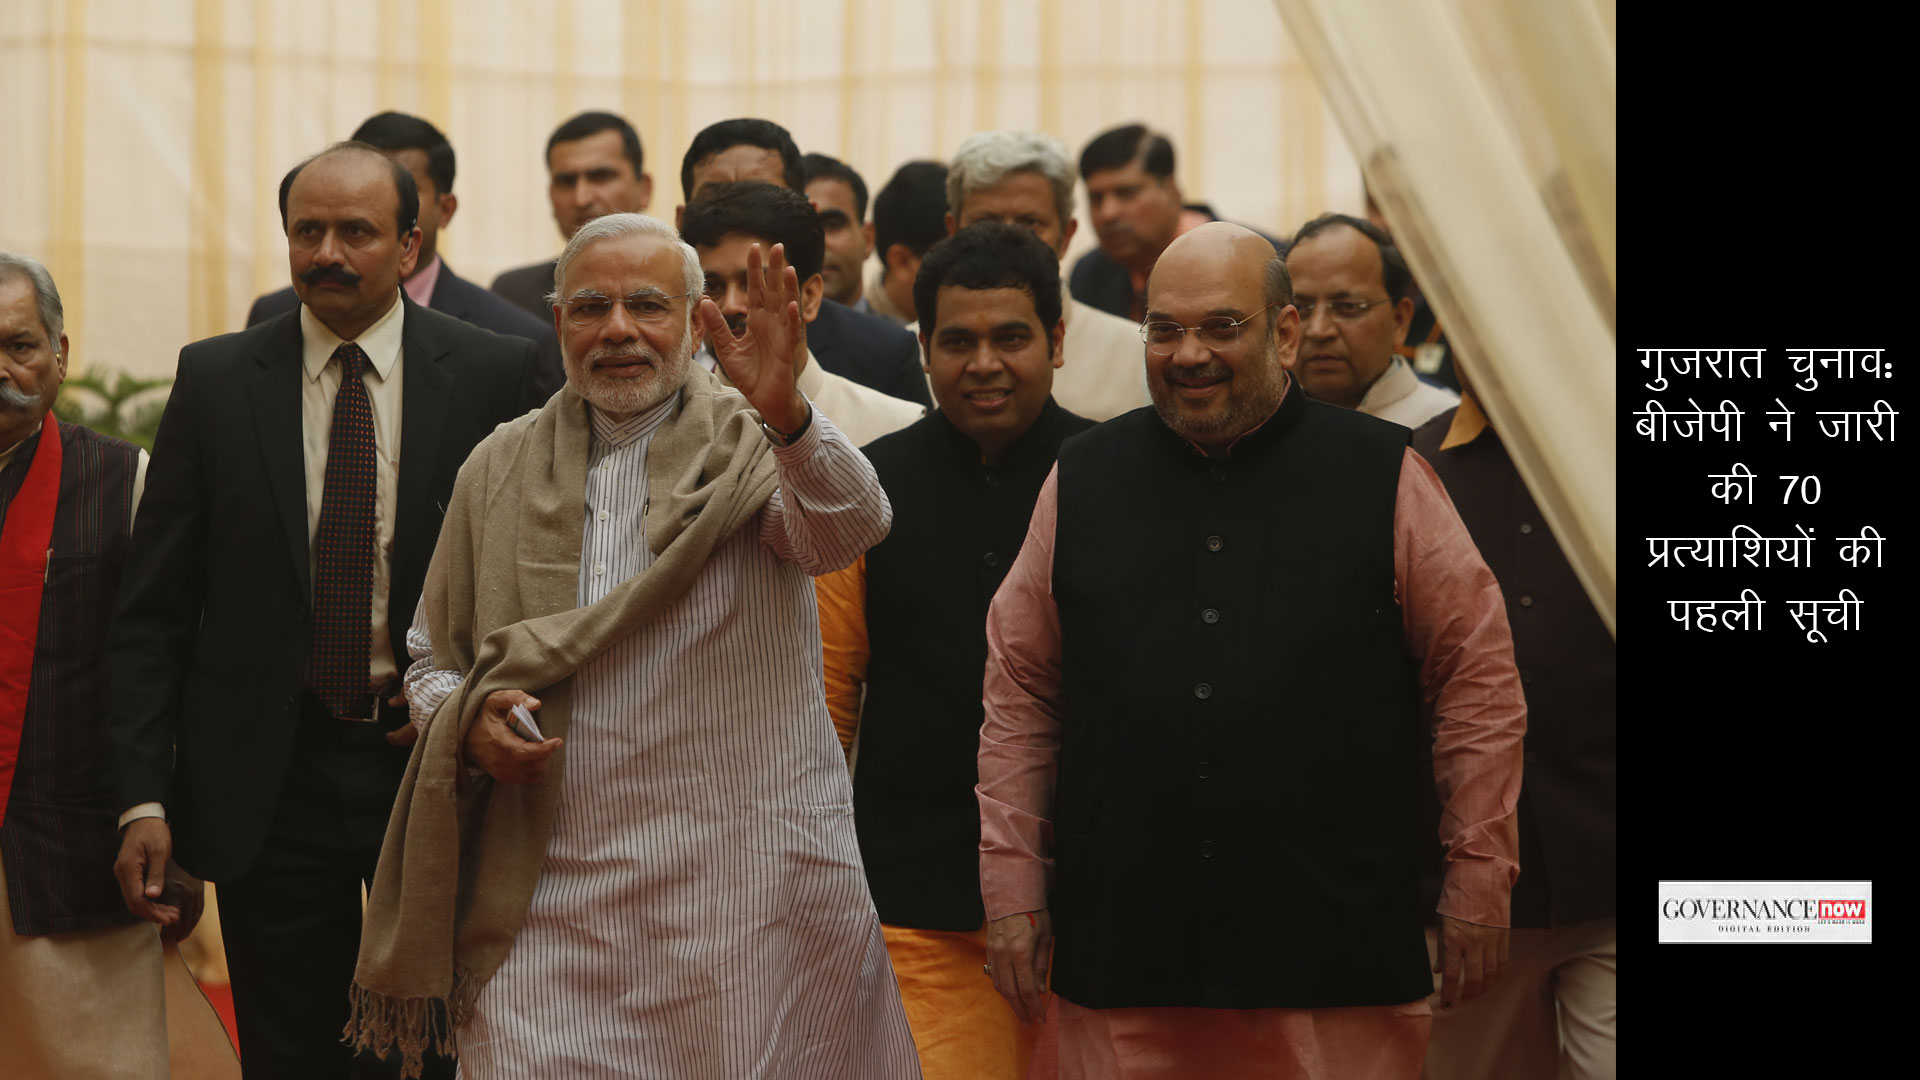 Gujrat election – 70 candidates in BJP's first list